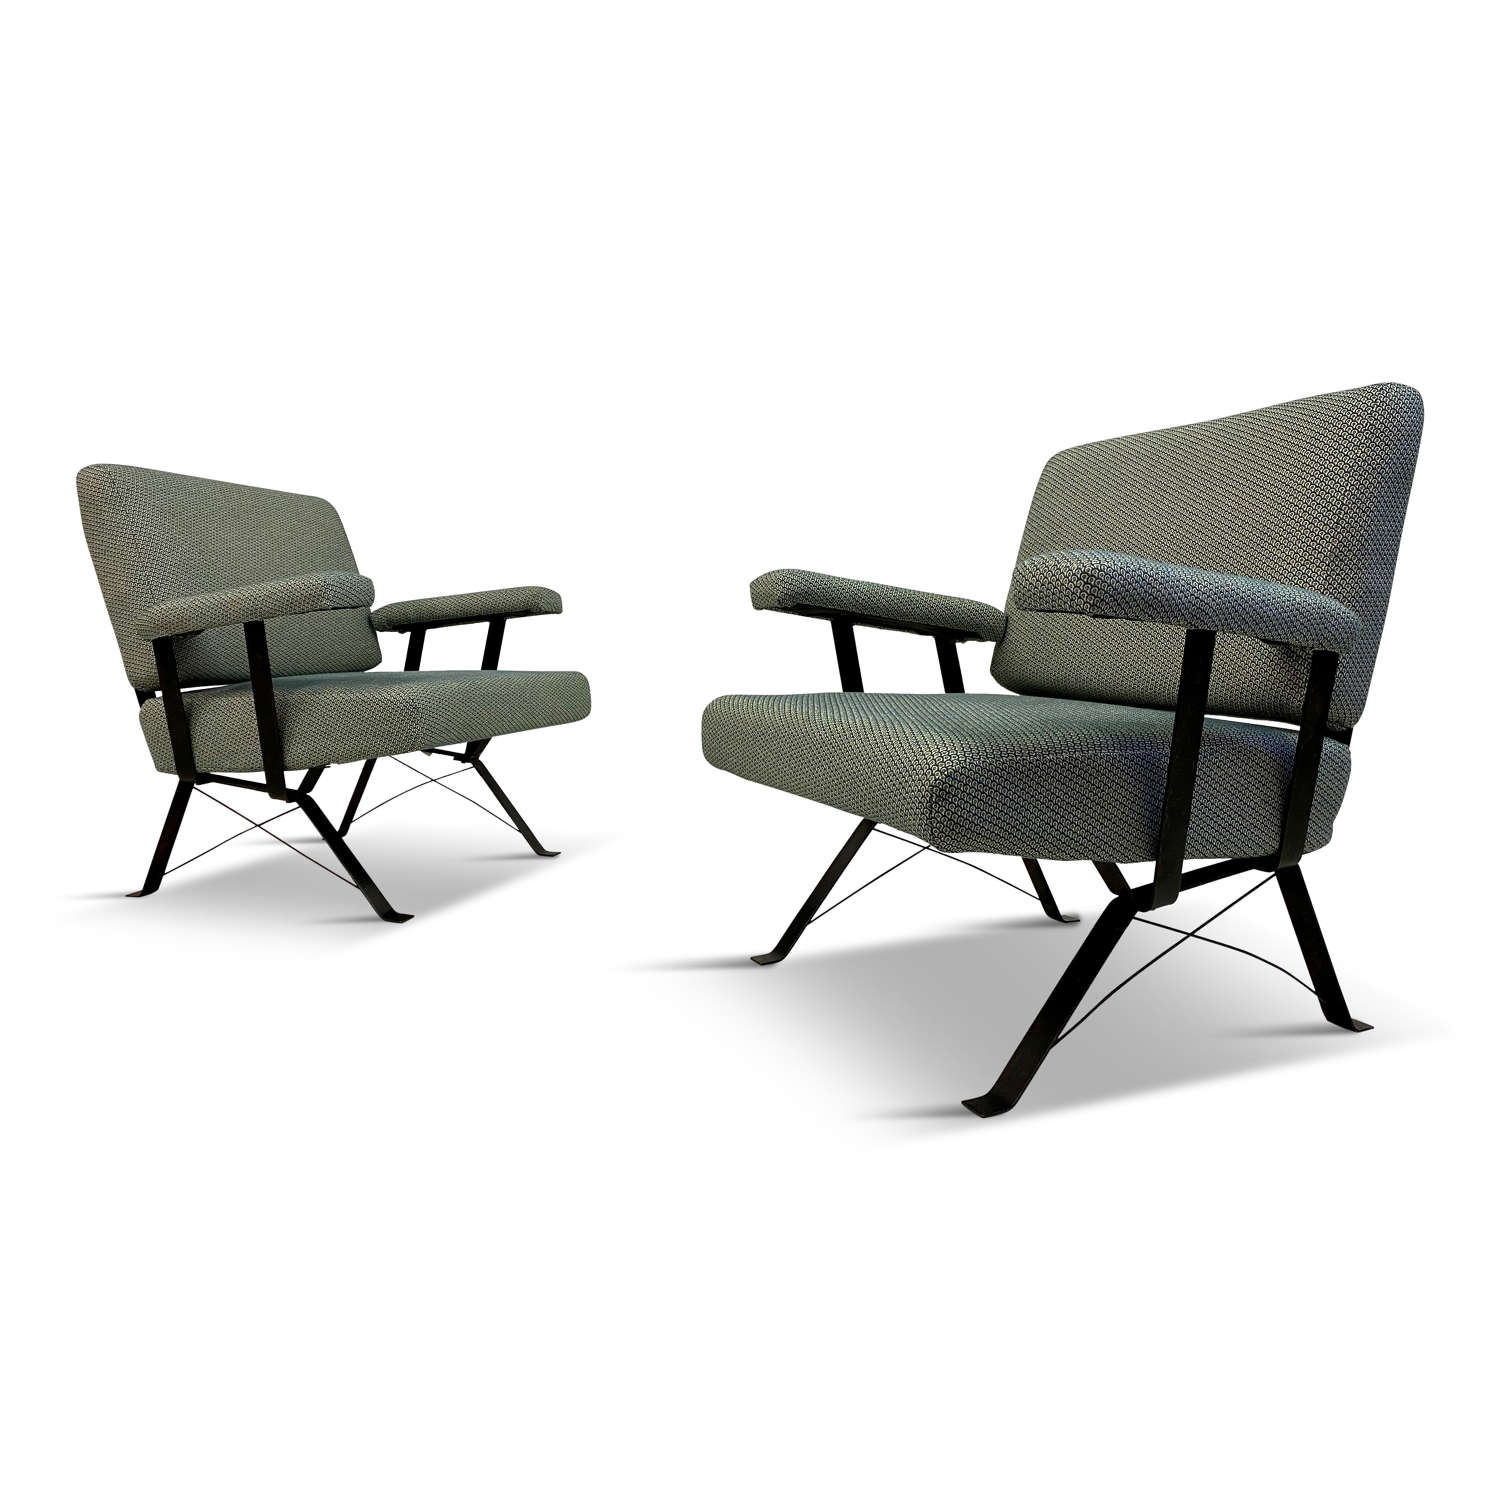 A pair of 1960s Italian steel framed armchairs in Pierre Frey fabric